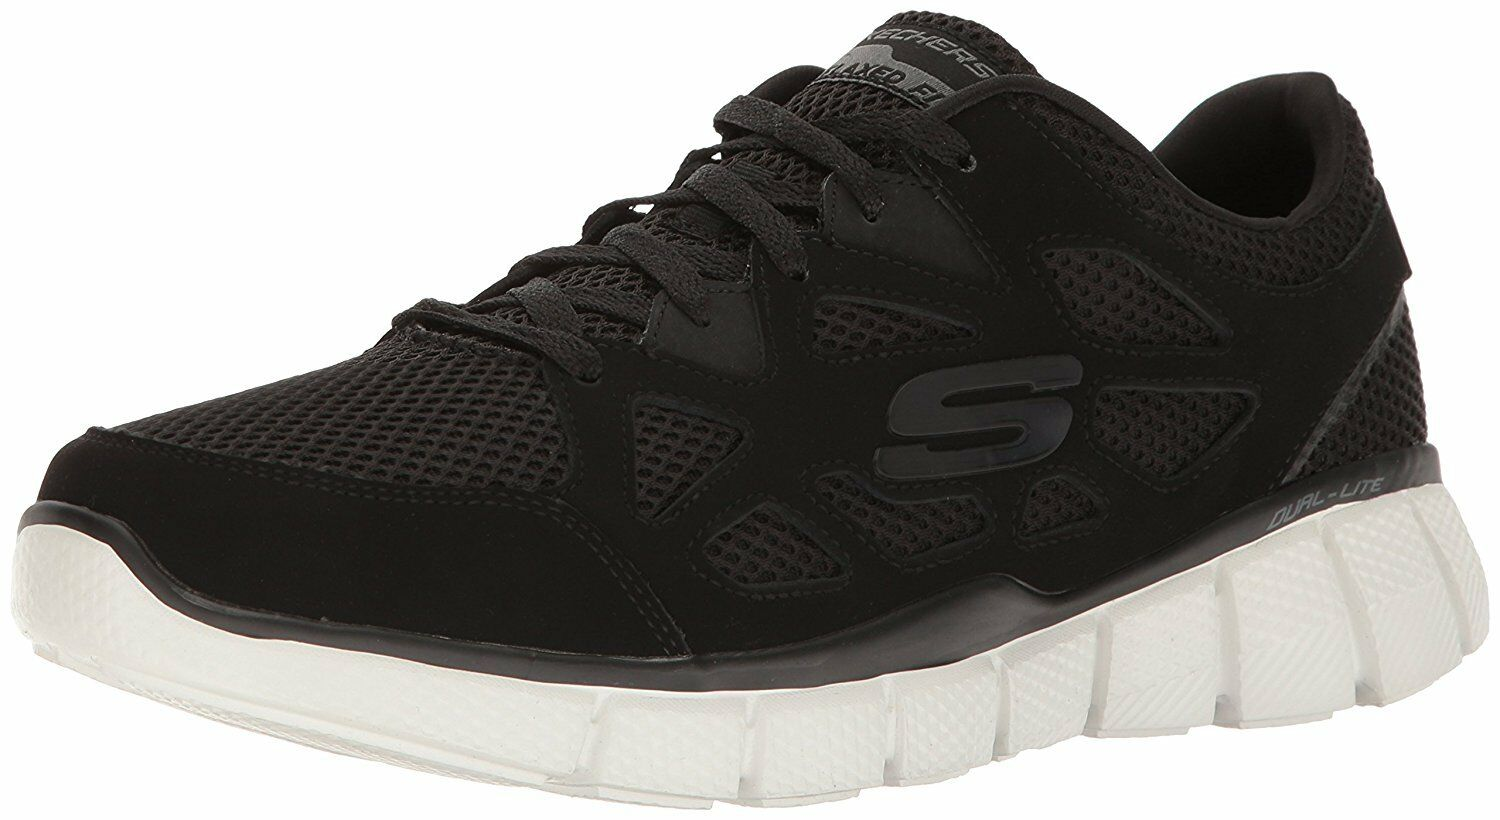 Skechers Equalizer 2.0-Groy, hommes hommes 2.0-Groy, Low-Top, noir Trainers 061f22